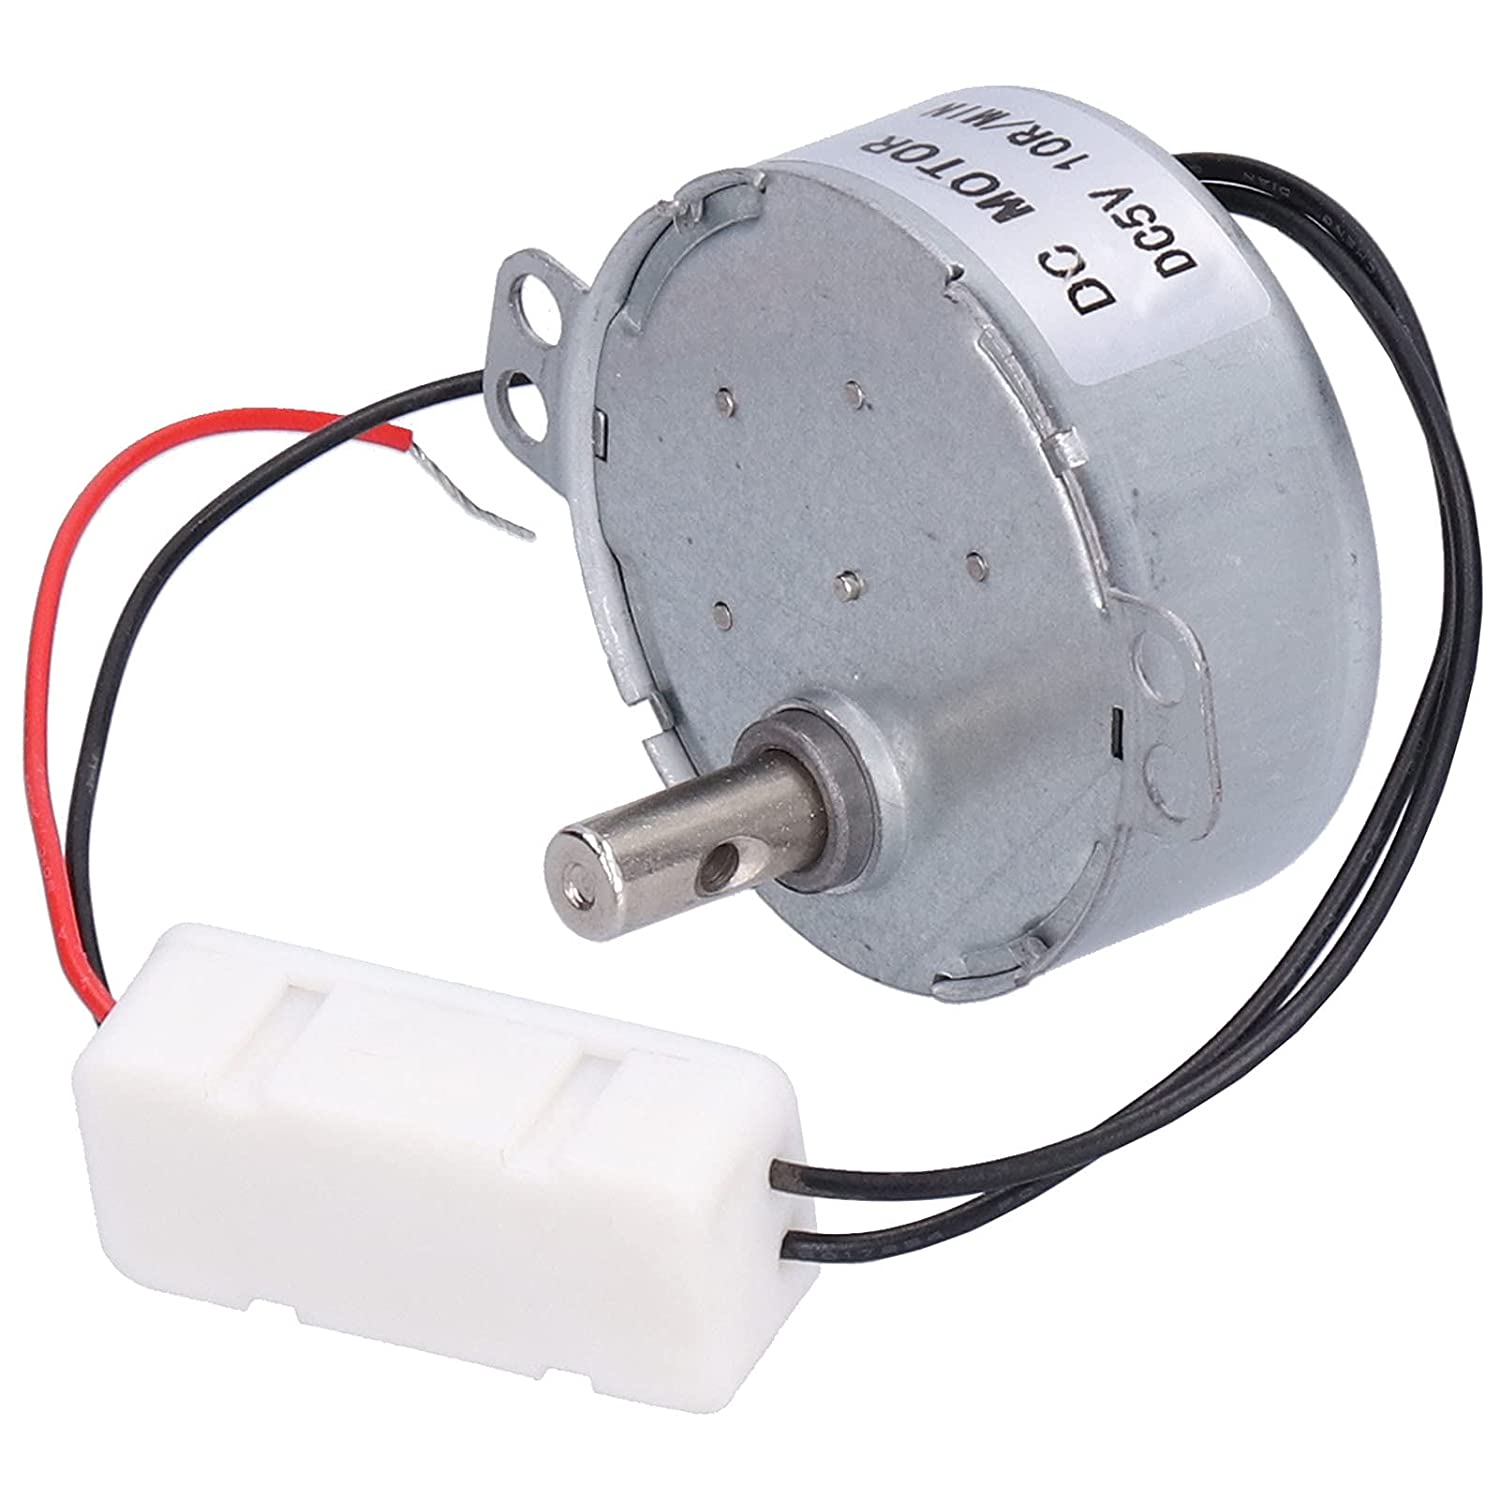 Micro Max 41% OFF Reduction Motor DC Large Power Low Consumpt lowest price Torsion